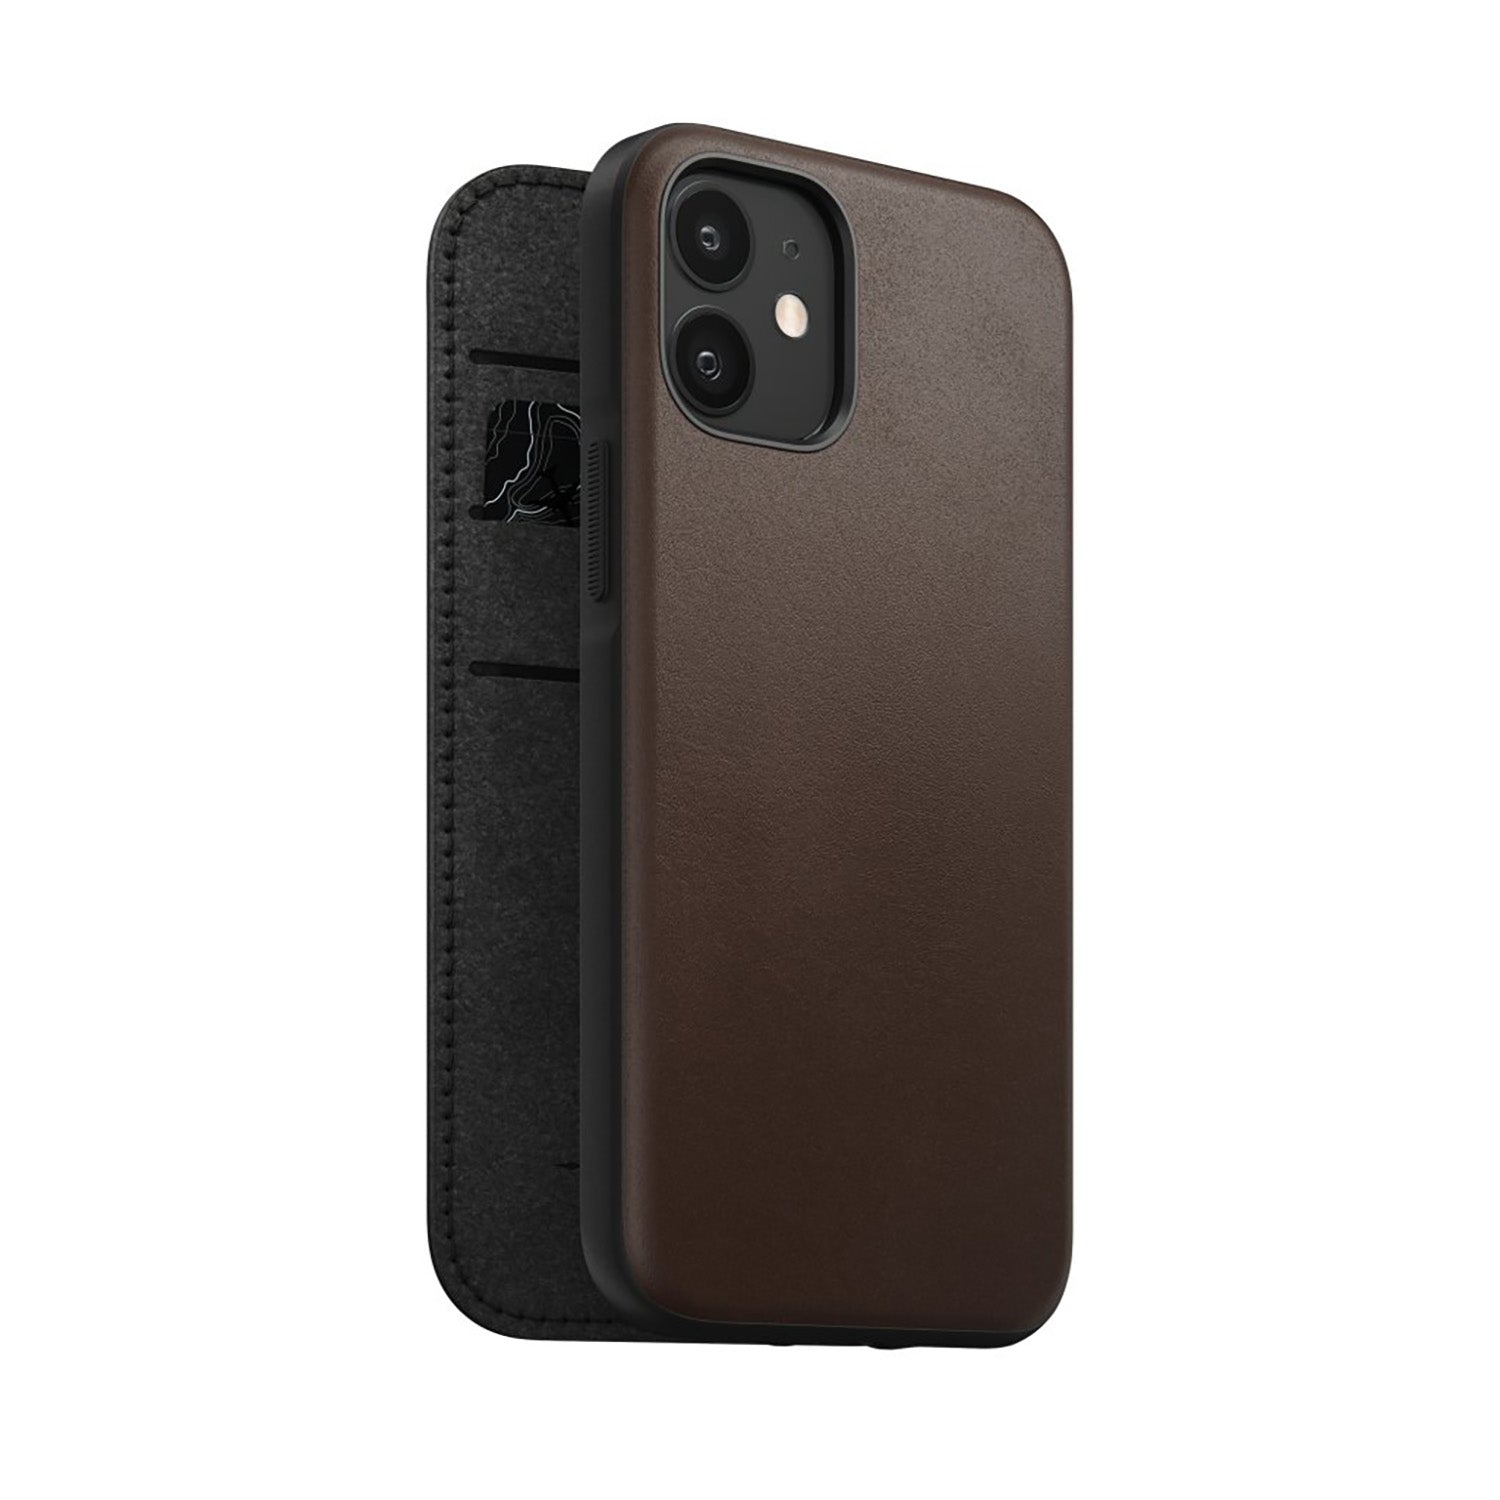 Nomad Rugged Folio iPhone 12 Mini Case